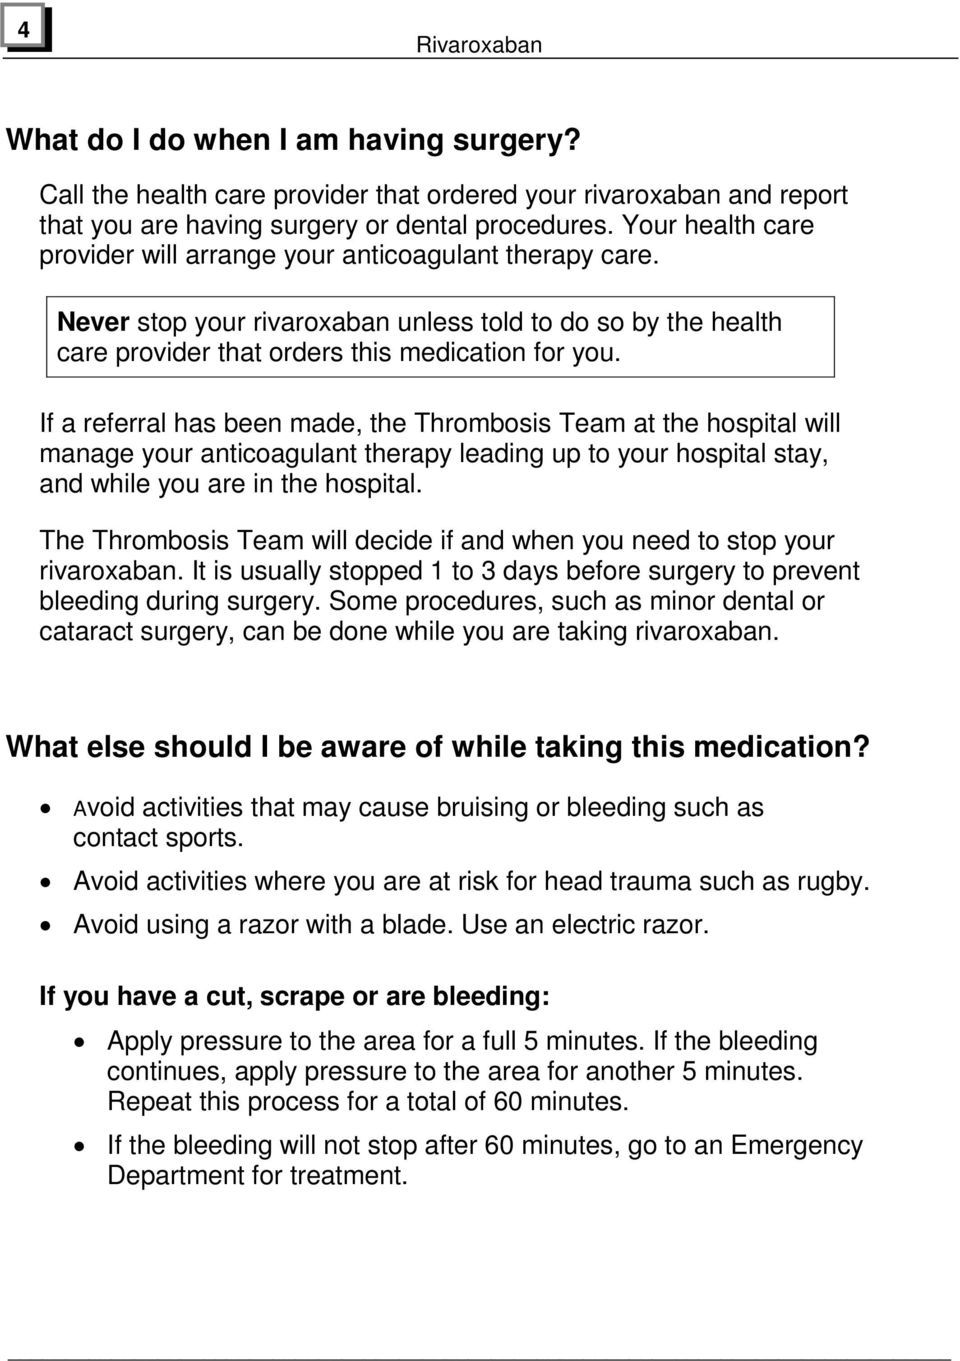 If a referral has been made, the Thrombosis Team at the hospital will manage your anticoagulant therapy leading up to your hospital stay, and while you are in the hospital.